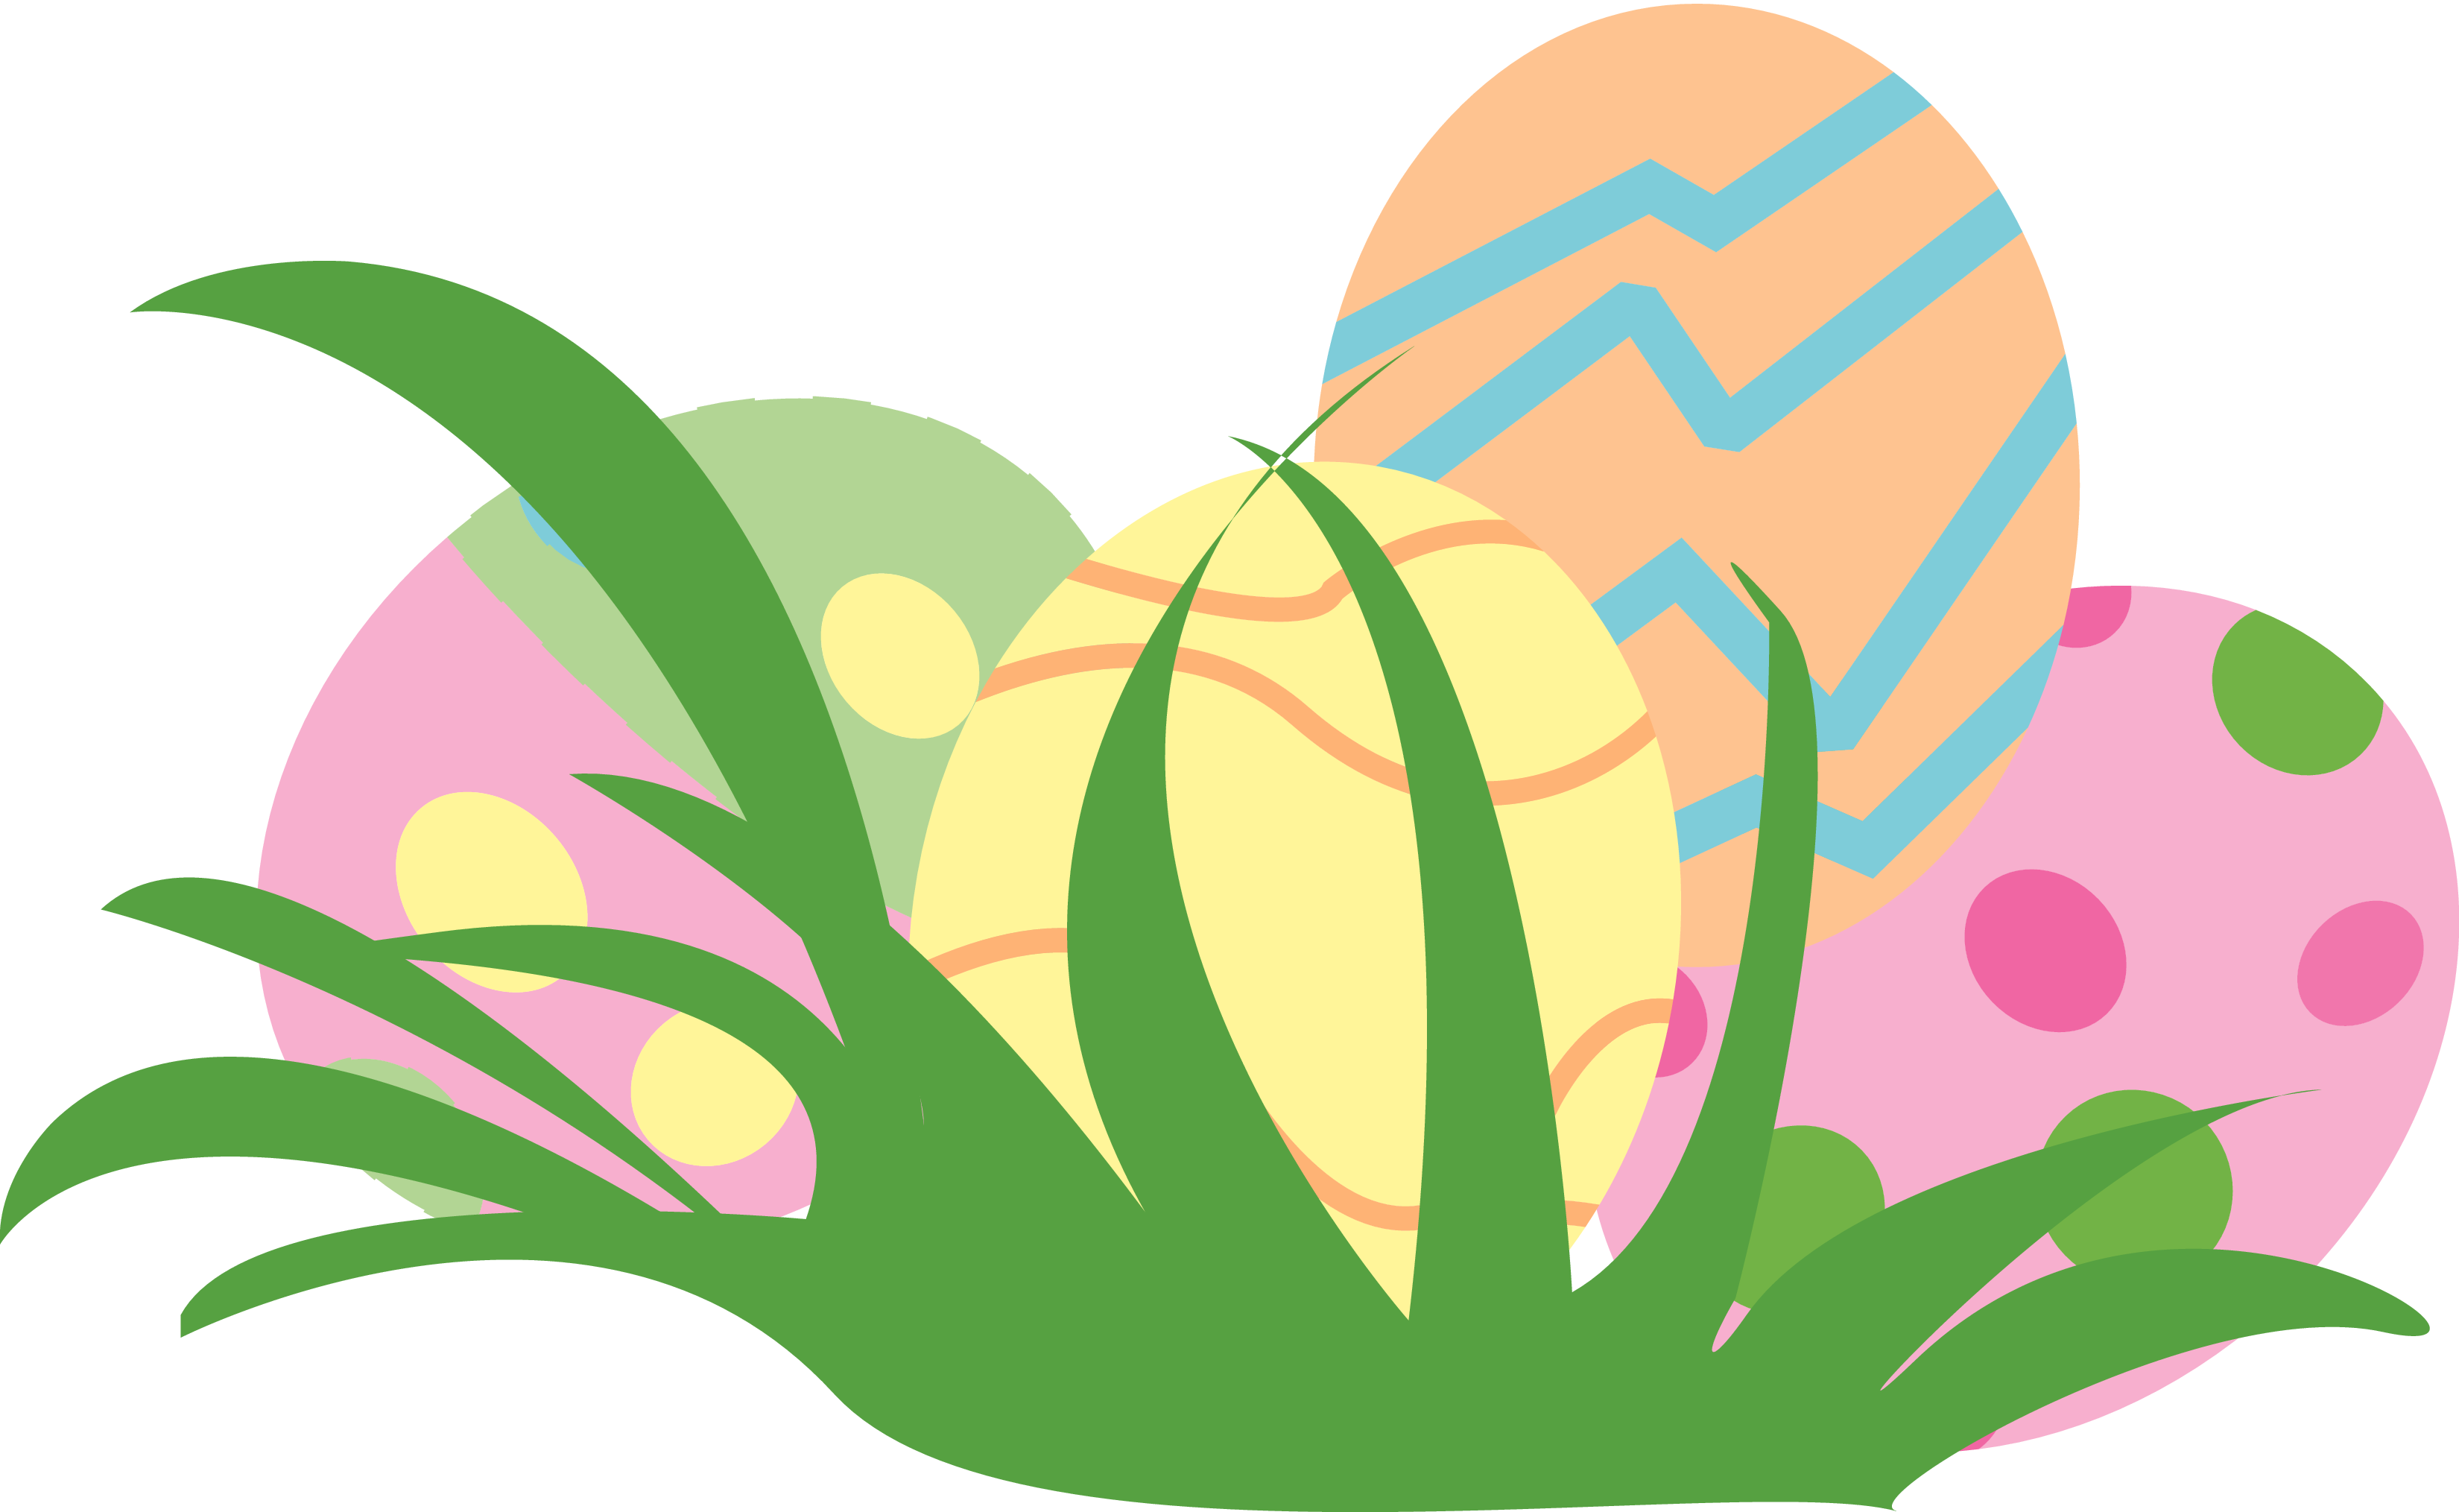 Free easter png. Collection of egg